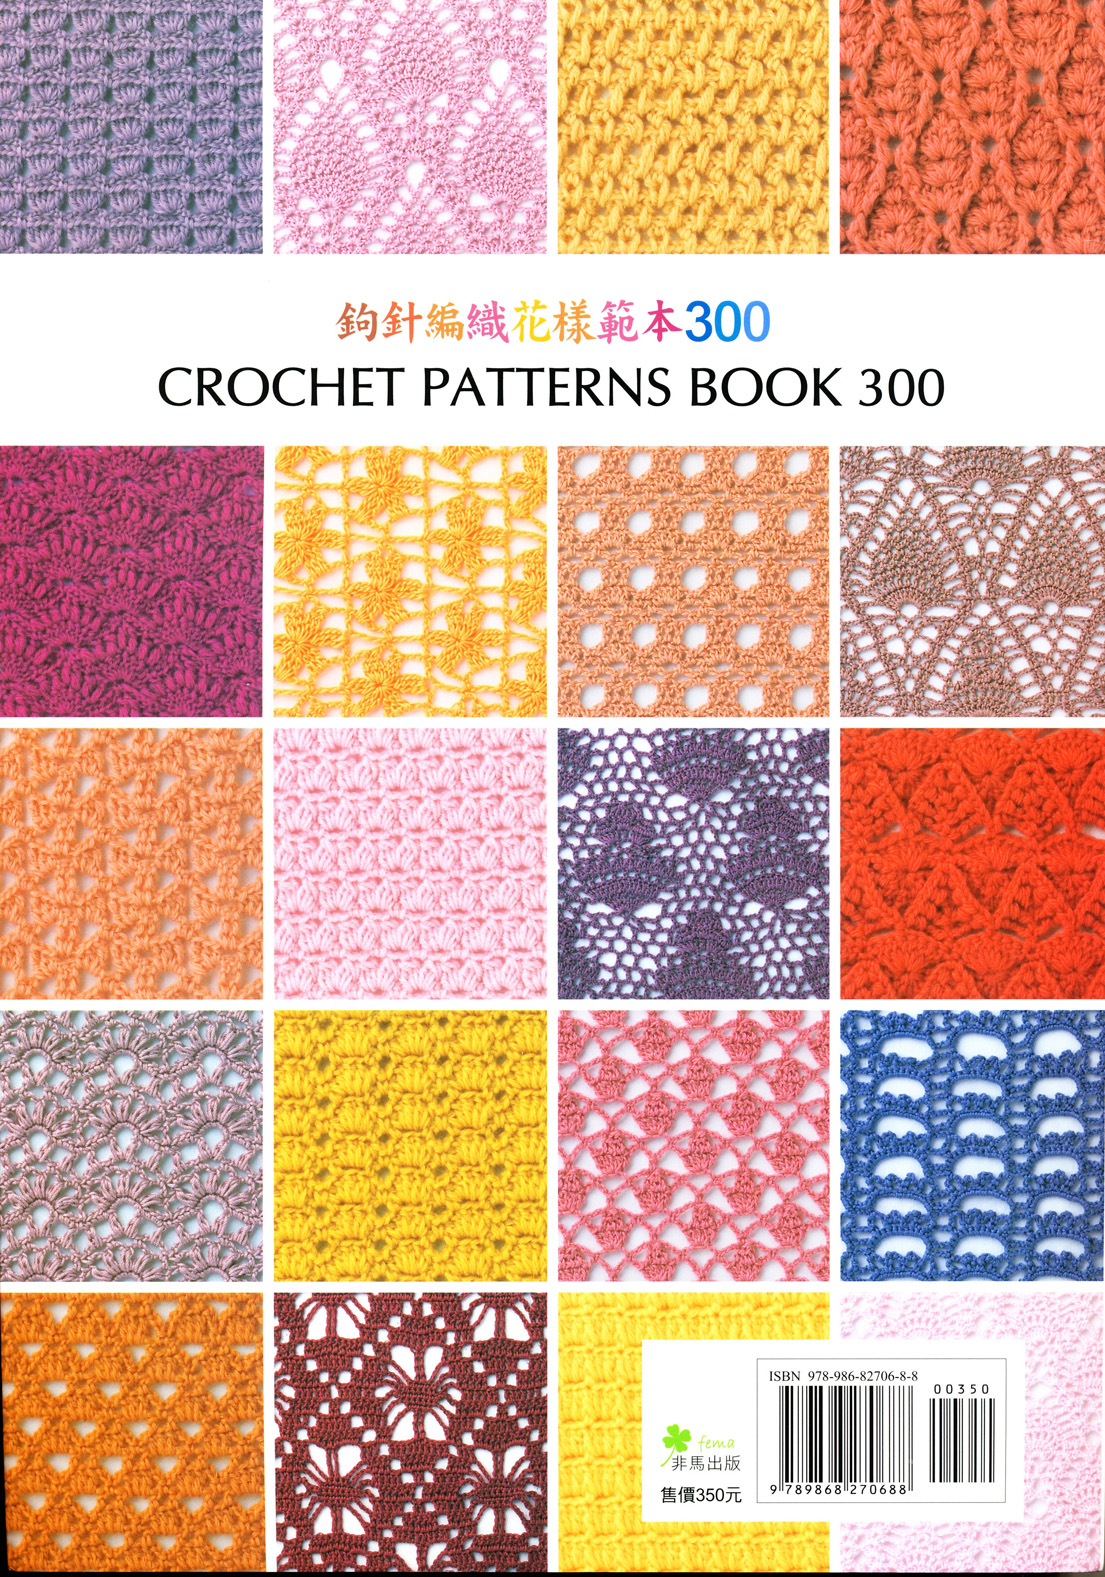 Crochet Guide : MyCreativeCard.com: Japanese Crochet 300 Stitches Guide Dictionary